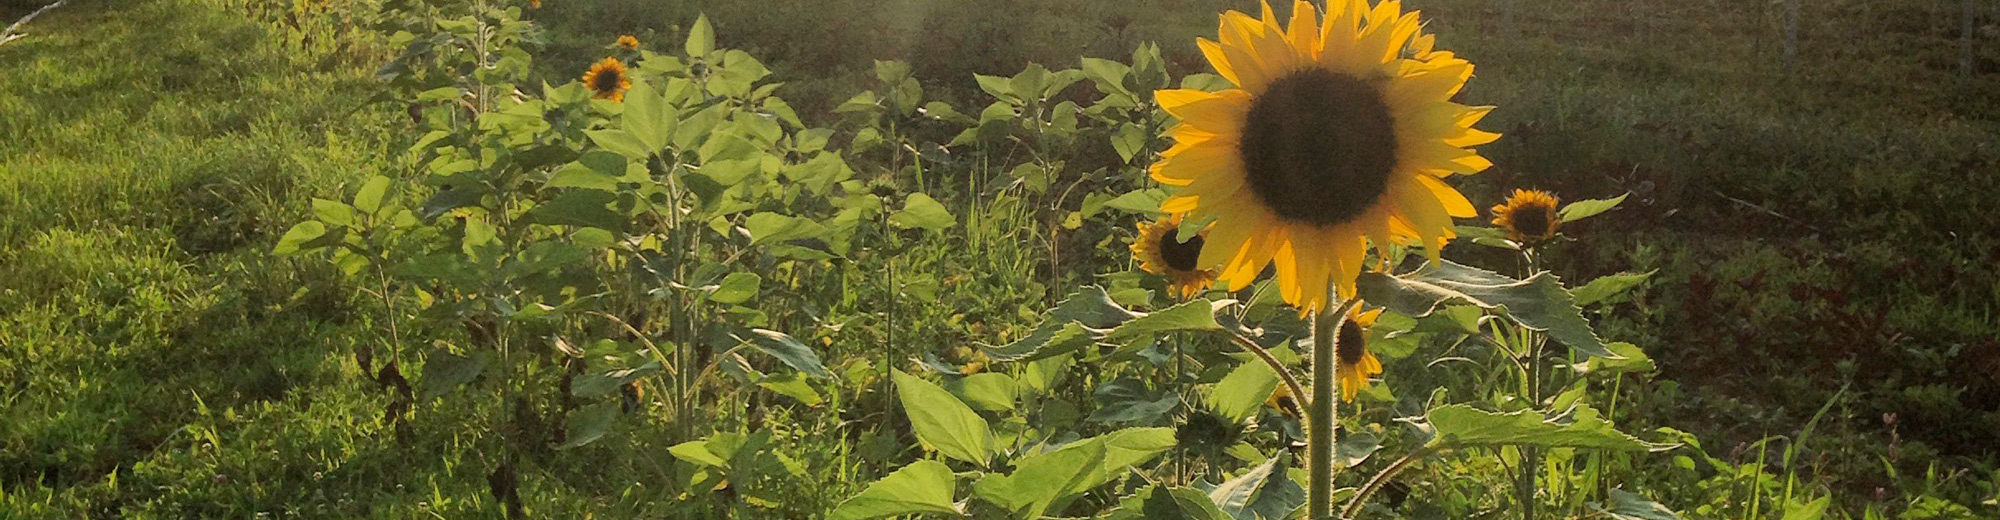 Donattions to Massaro Community Farm helps feed your community